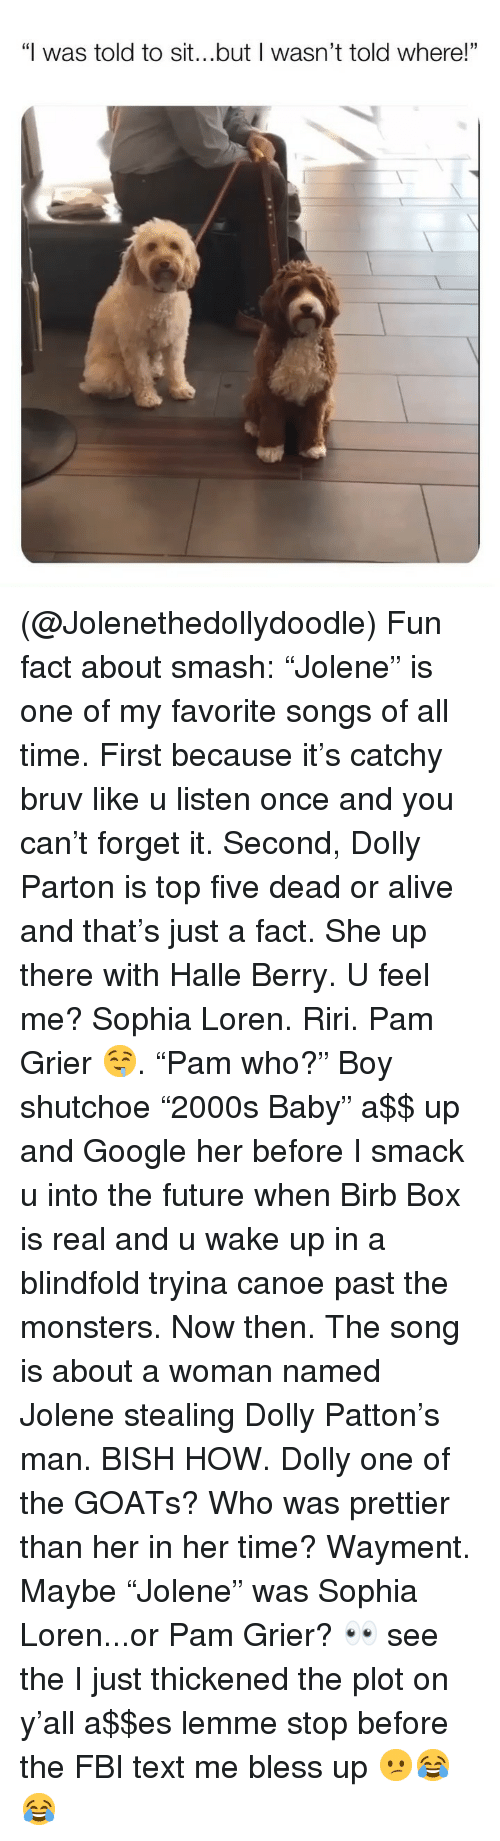 """Alive, Bless Up, and Dead or Alive: """"I was told to sit...but I wasn't told where!""""  01 (@Jolenethedollydoodle) Fun fact about smash: """"Jolene"""" is one of my favorite songs of all time. First because it's catchy bruv like u listen once and you can't forget it. Second, Dolly Parton is top five dead or alive and that's just a fact. She up there with Halle Berry. U feel me? Sophia Loren. Riri. Pam Grier 🤤. """"Pam who?"""" Boy shutchoe """"2000s Baby"""" a$$ up and Google her before I smack u into the future when Birb Box is real and u wake up in a blindfold tryina canoe past the monsters. Now then. The song is about a woman named Jolene stealing Dolly Patton's man. BISH HOW. Dolly one of the GOATs? Who was prettier than her in her time? Wayment. Maybe """"Jolene"""" was Sophia Loren...or Pam Grier? 👀 see the I just thickened the plot on y'all a$$es lemme stop before the FBI text me bless up 😕😂😂"""